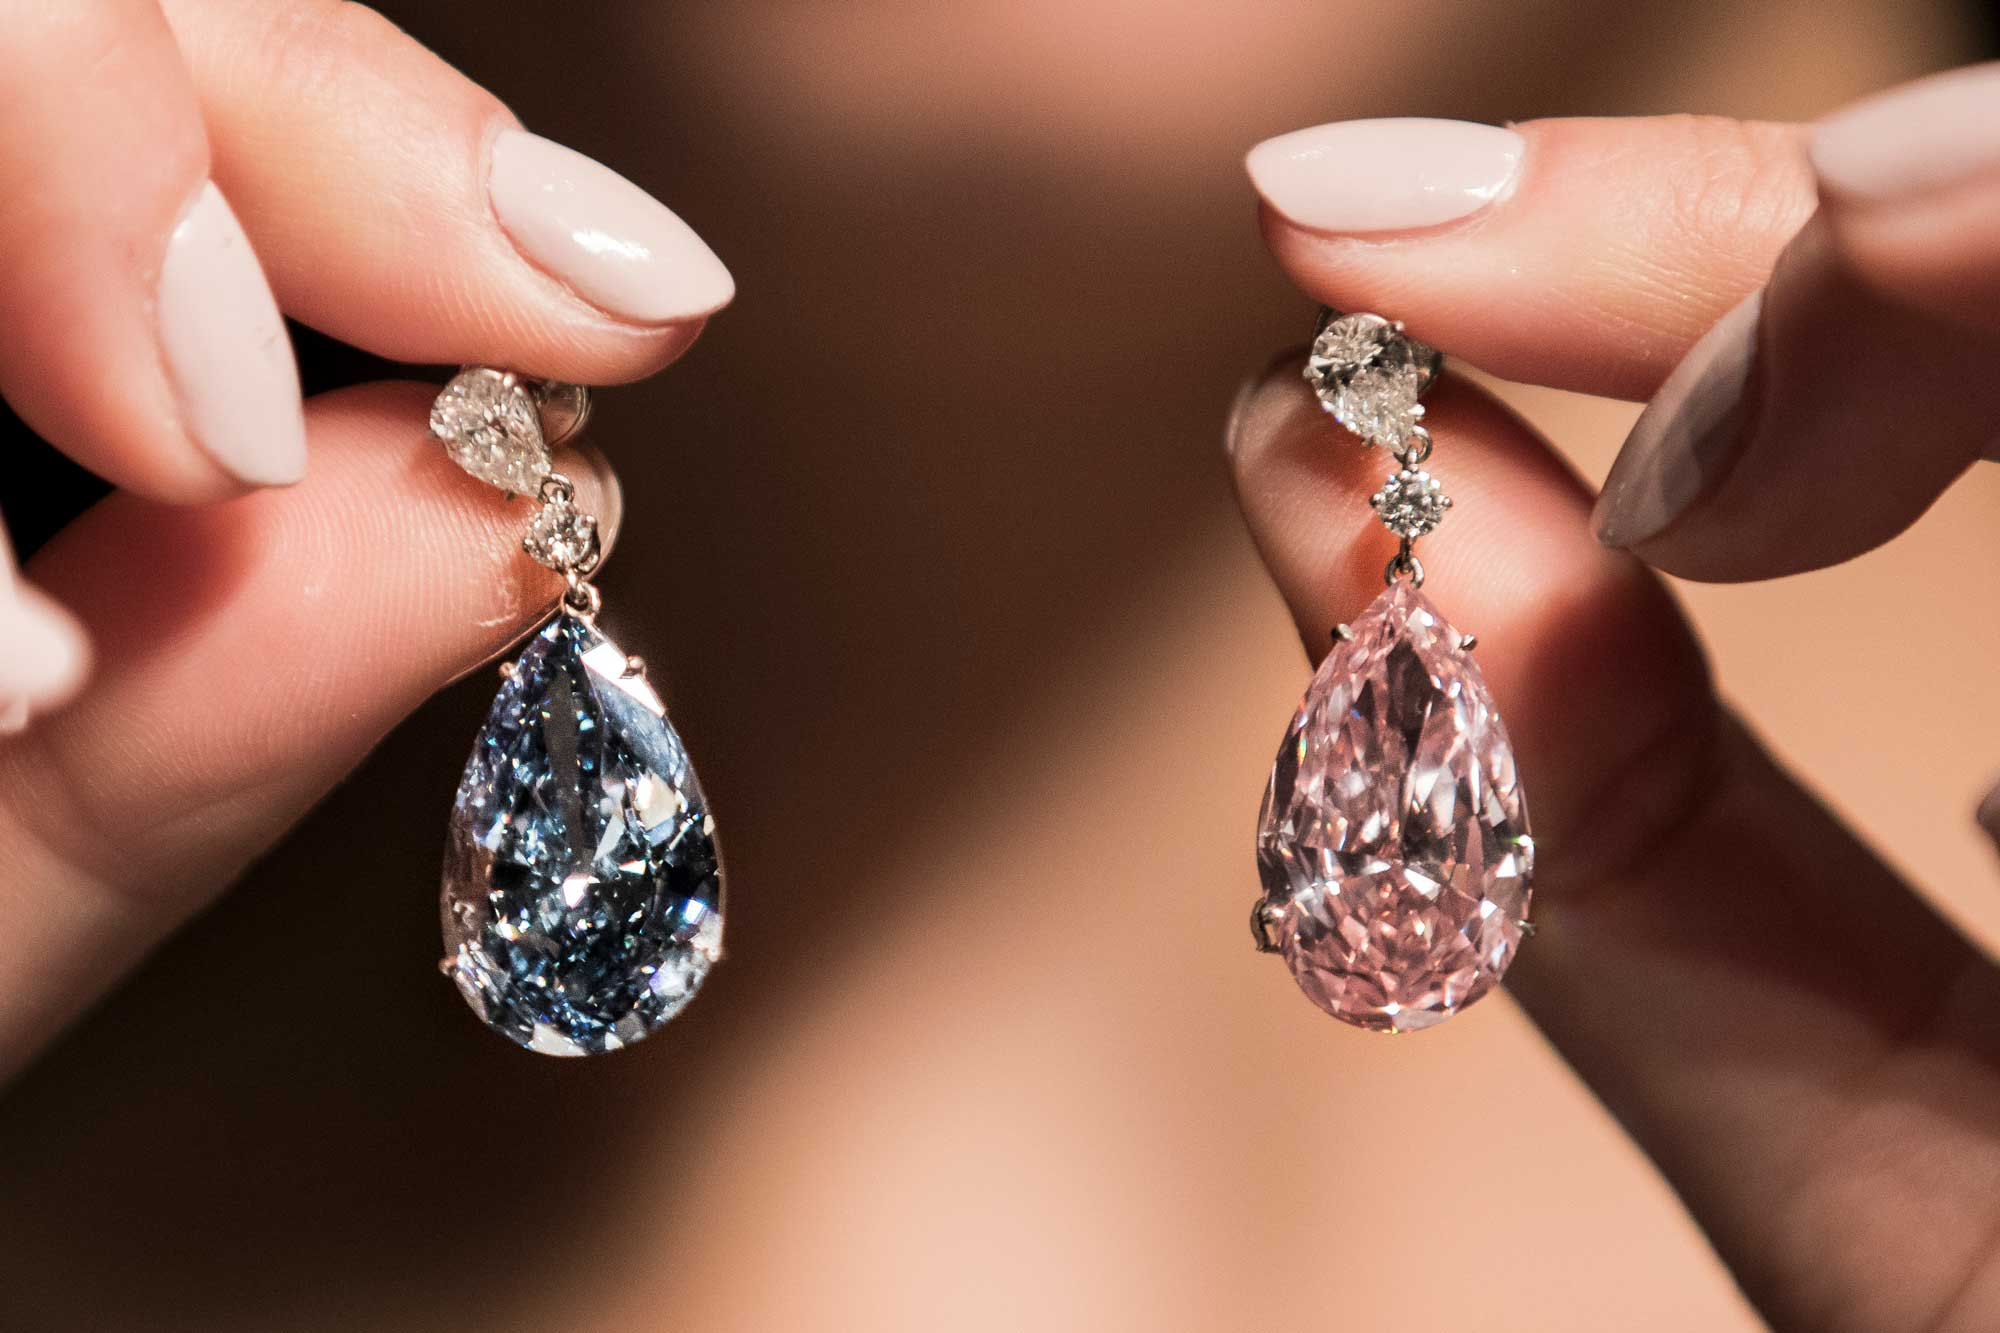 grading up vivid weighing dollars worth type puts apollo blue purity flawless a fancy earrings internally sothebys articles diamond iib sale million for s sotheby